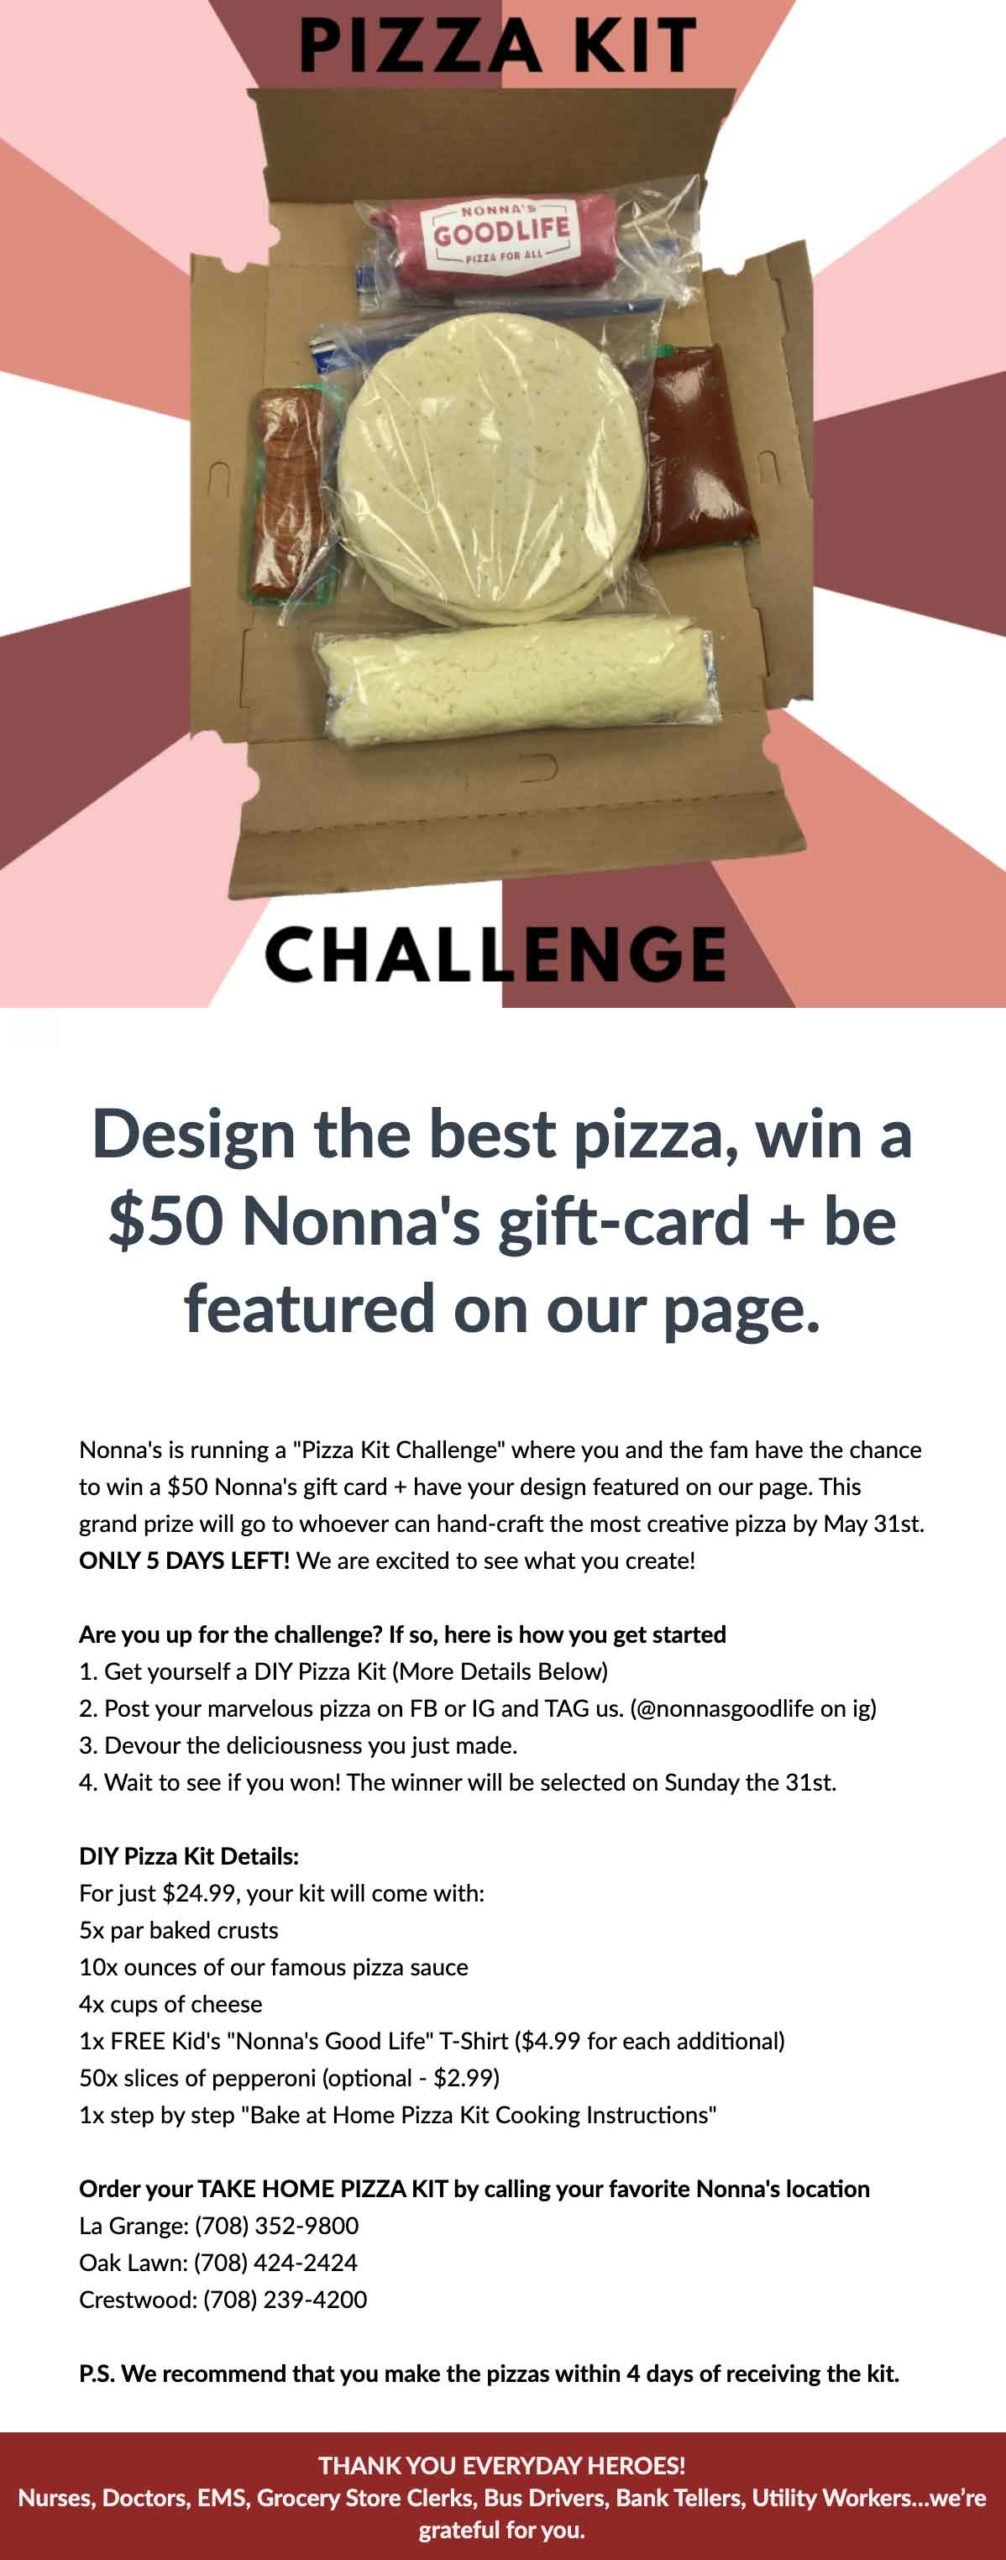 Nonna's Pizza: Design the best pizza email